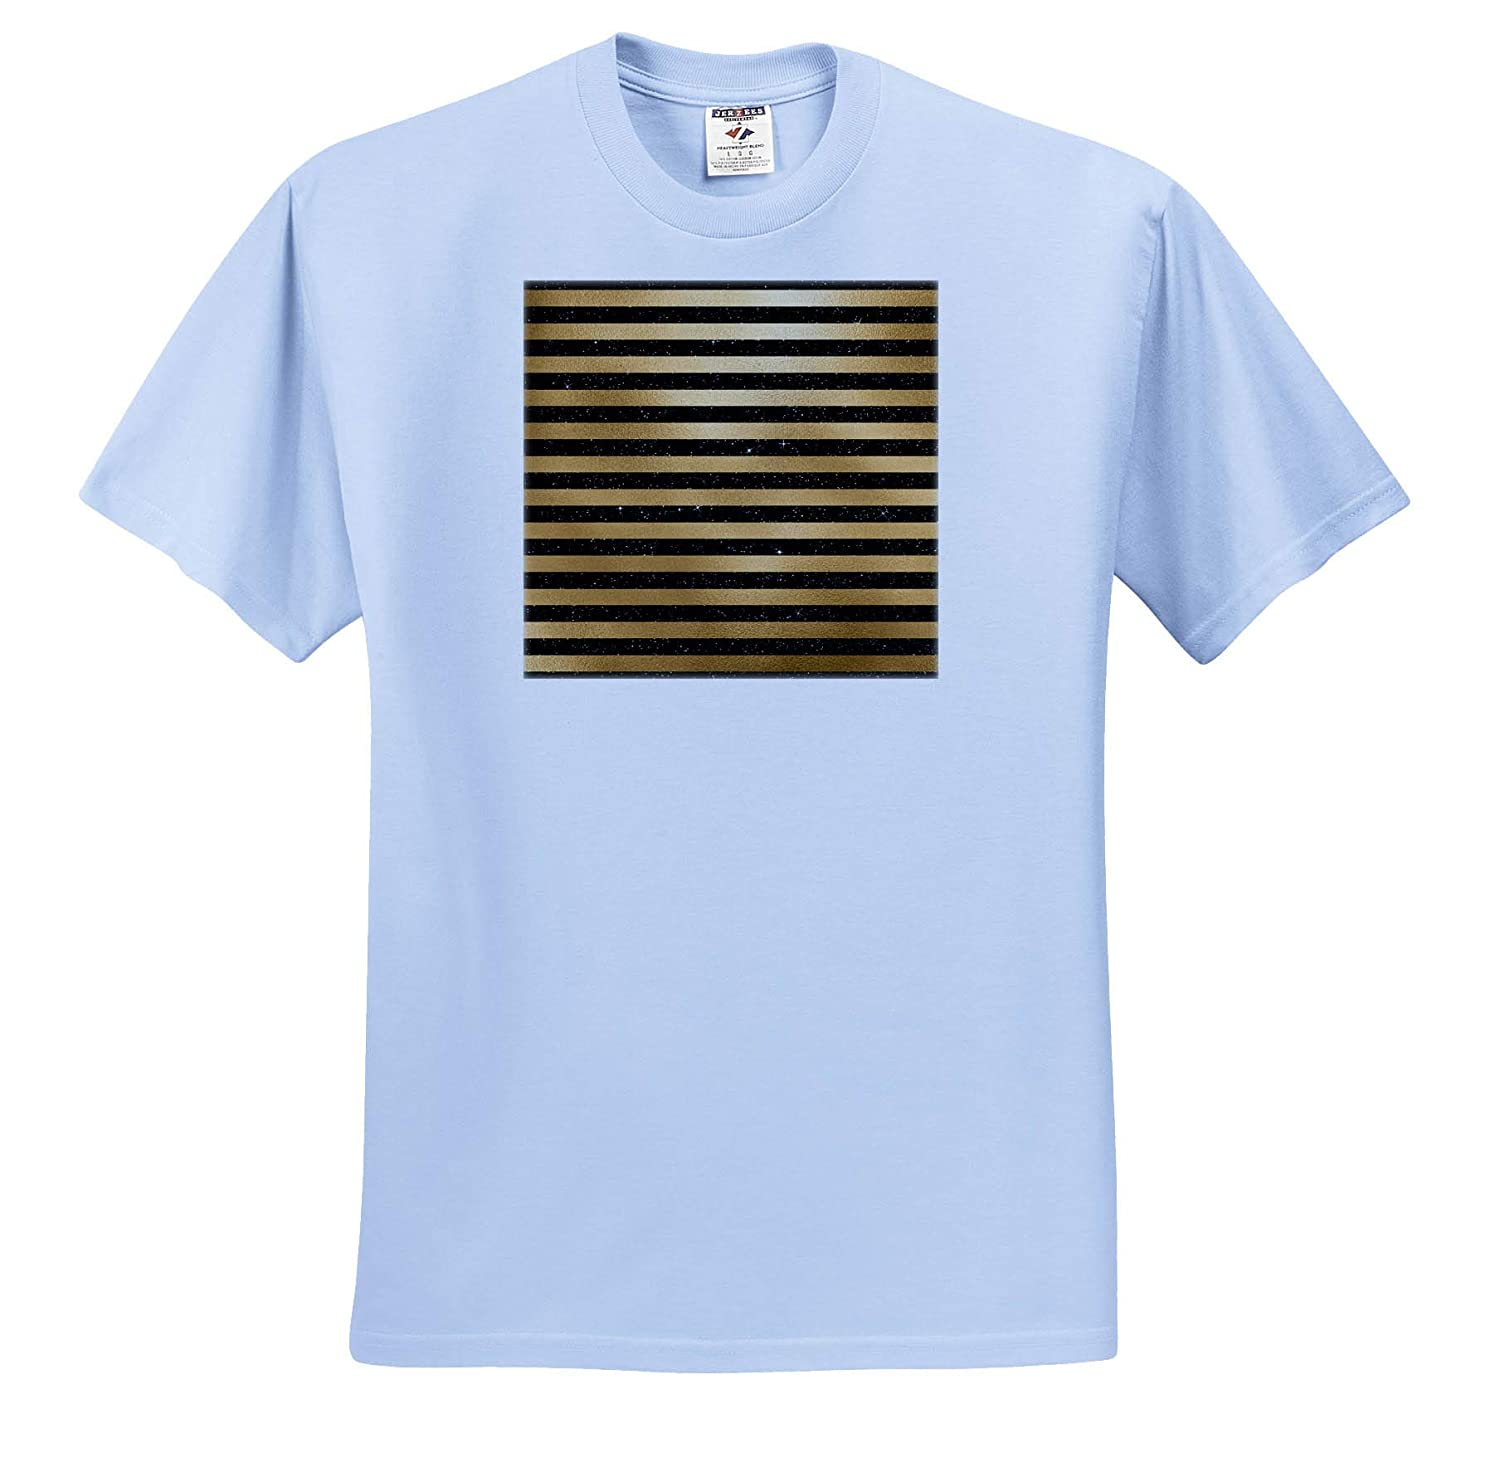 3dRose Anne Marie Baugh Chic Gold Color and Black Image of Glitter Pattern T-Shirts Patterns